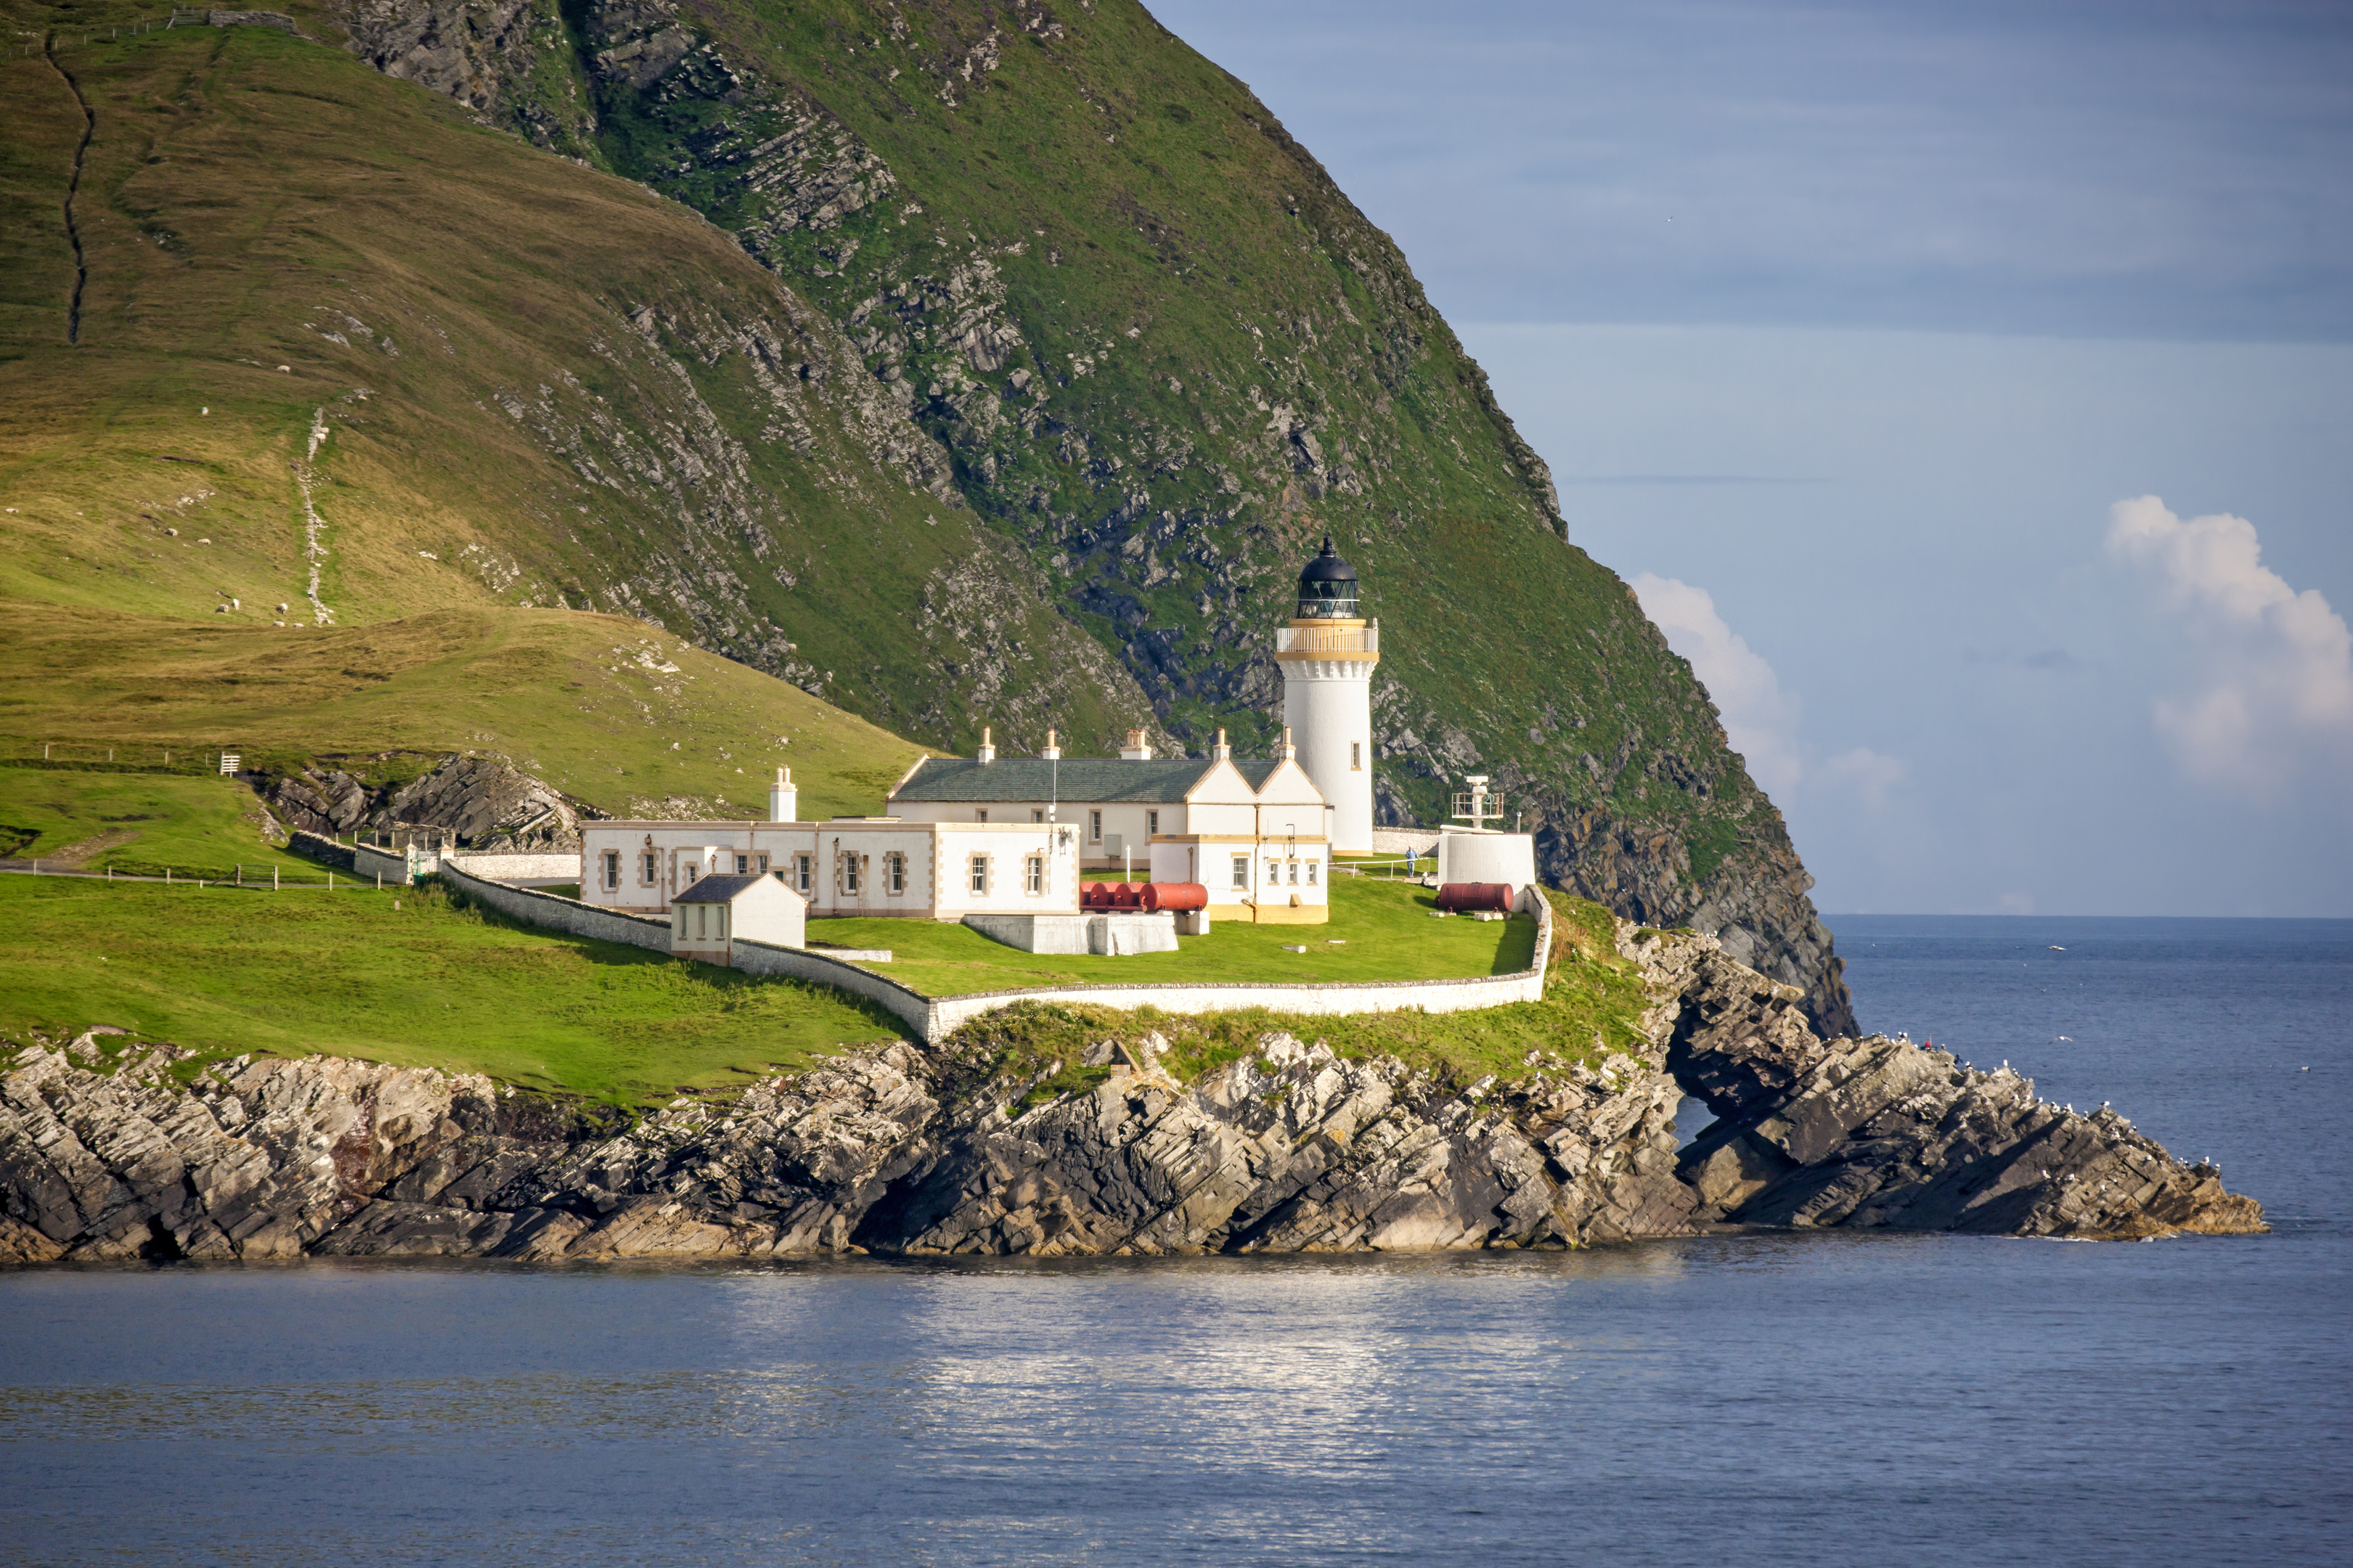 Beautiful lighthouse and buildings on the island of Bressay (Getty Images)